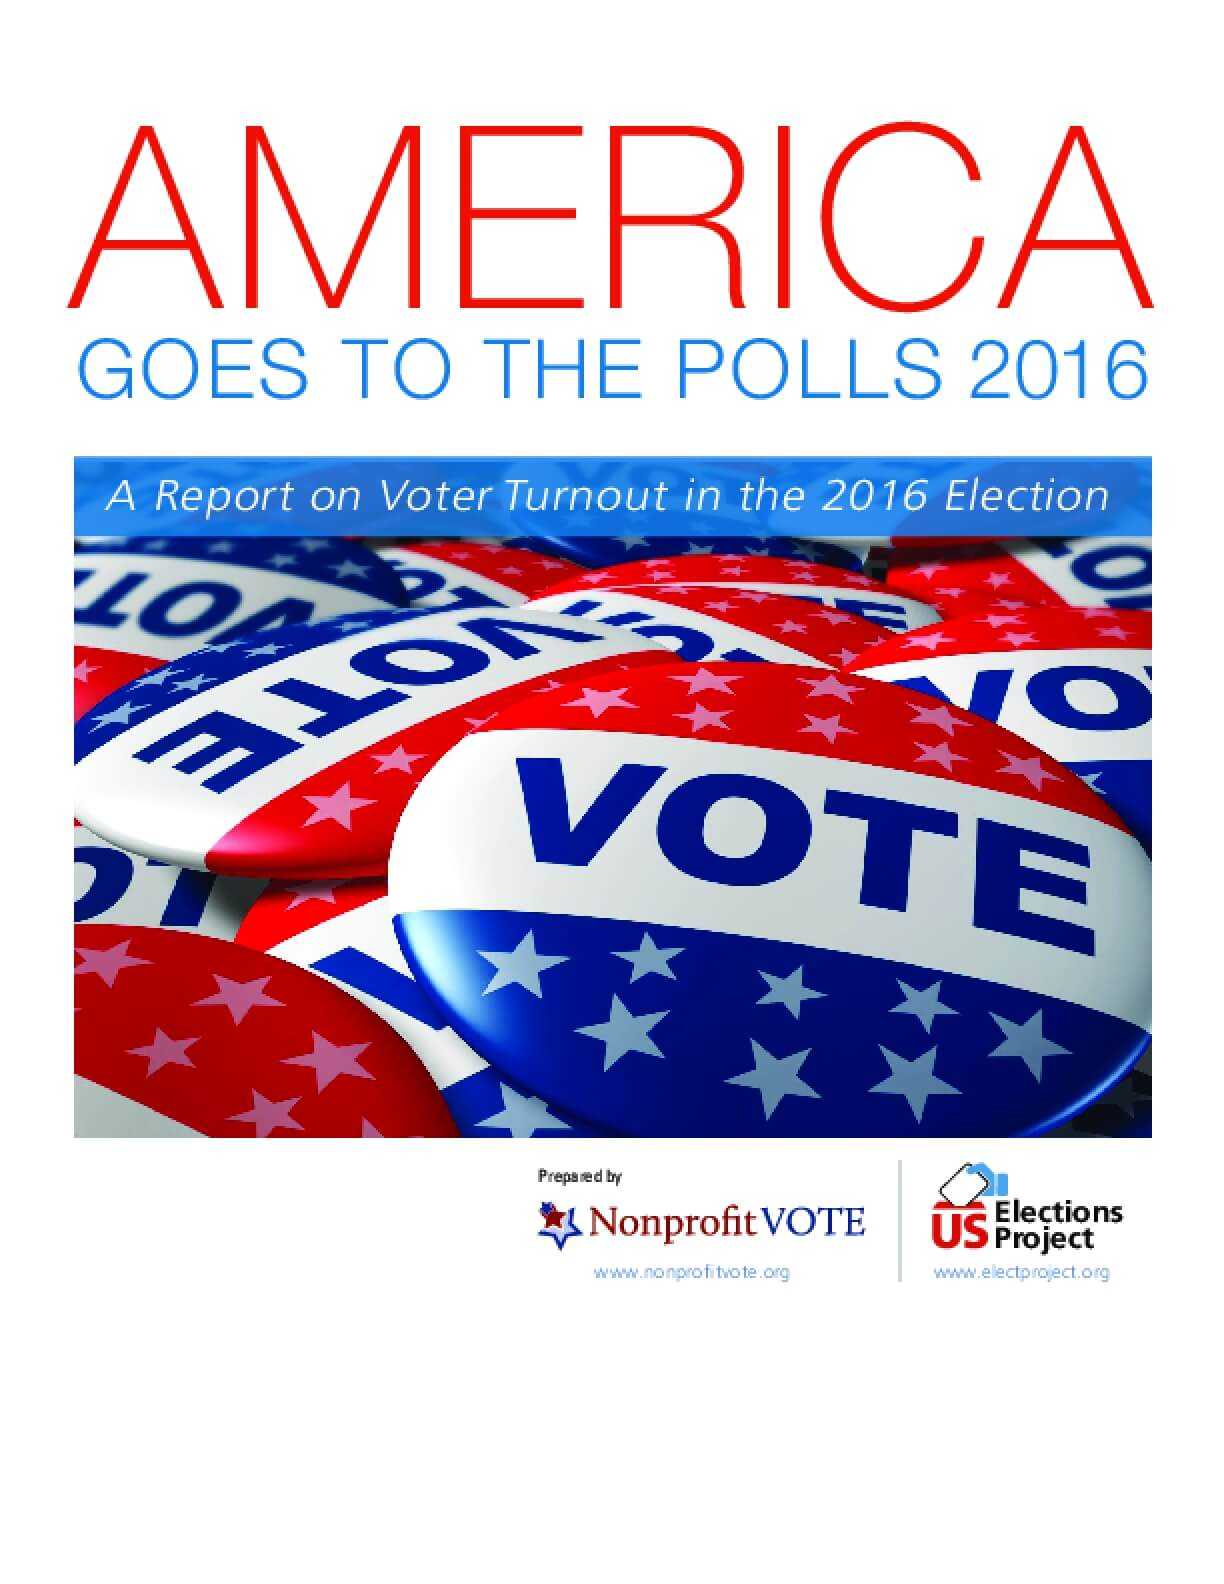 America Goes to the Polls: A Report on Voter Turnout in the 2016 Election